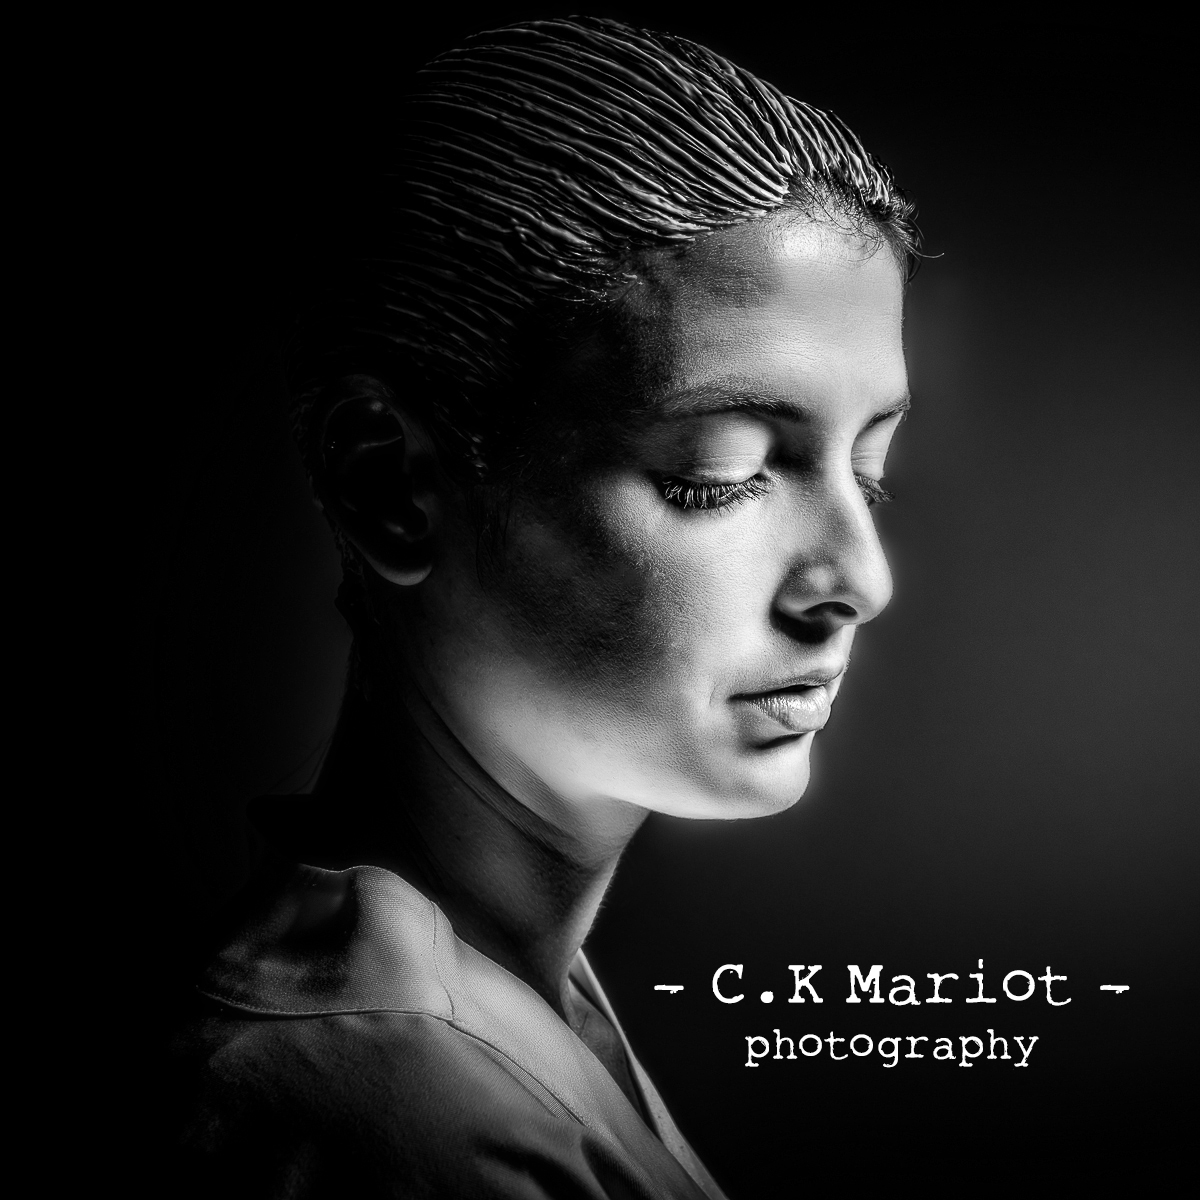 CK-Mariot-Photography-black-1286